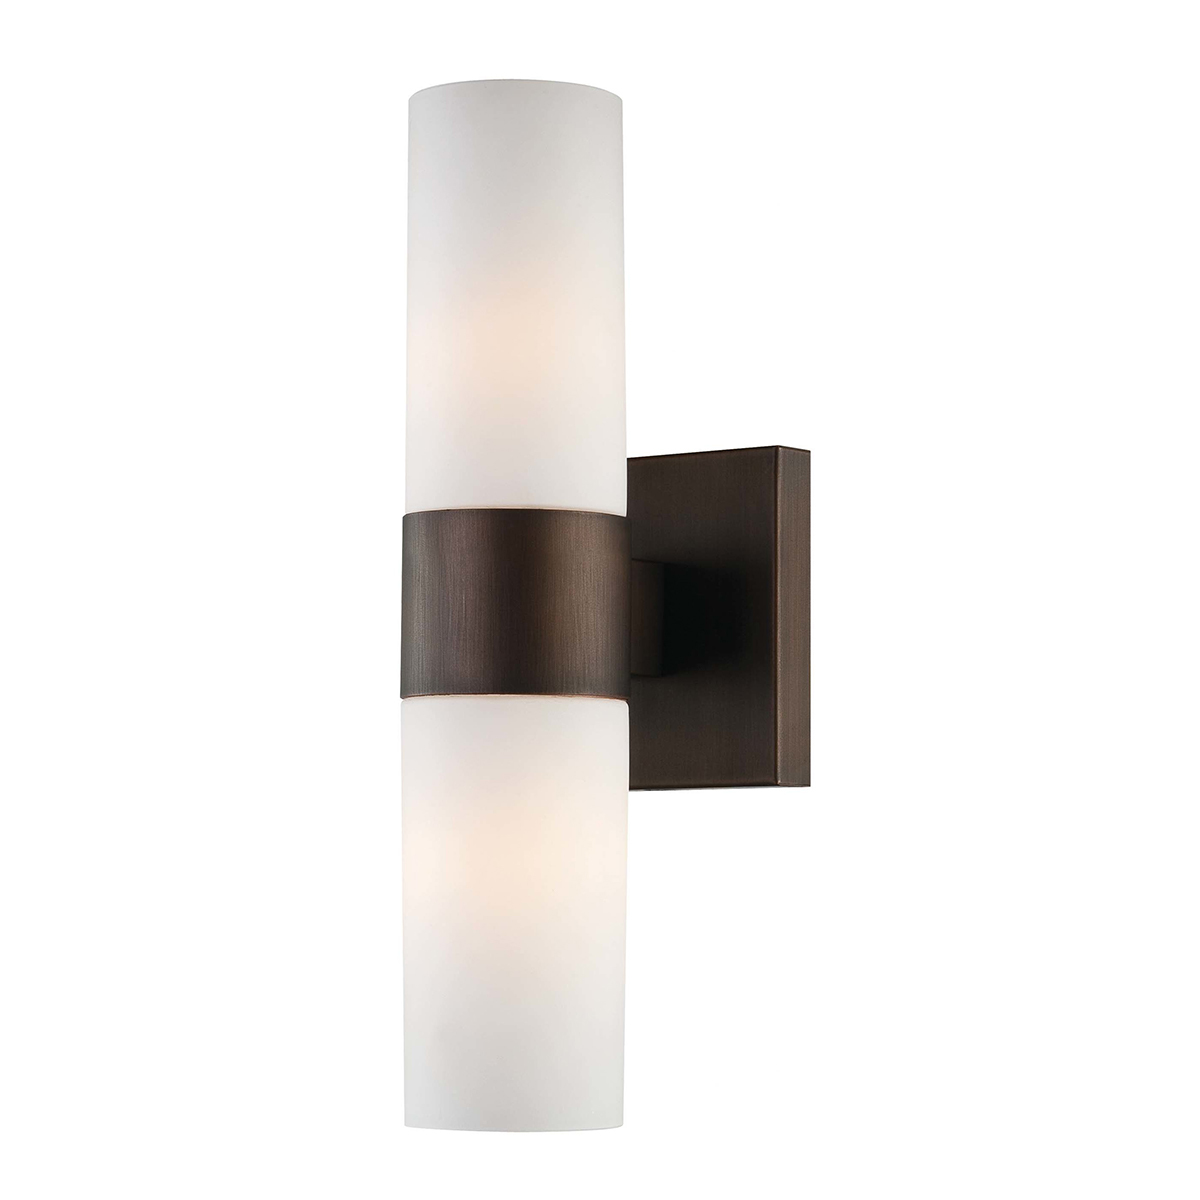 White wall sconce with copper finish photo